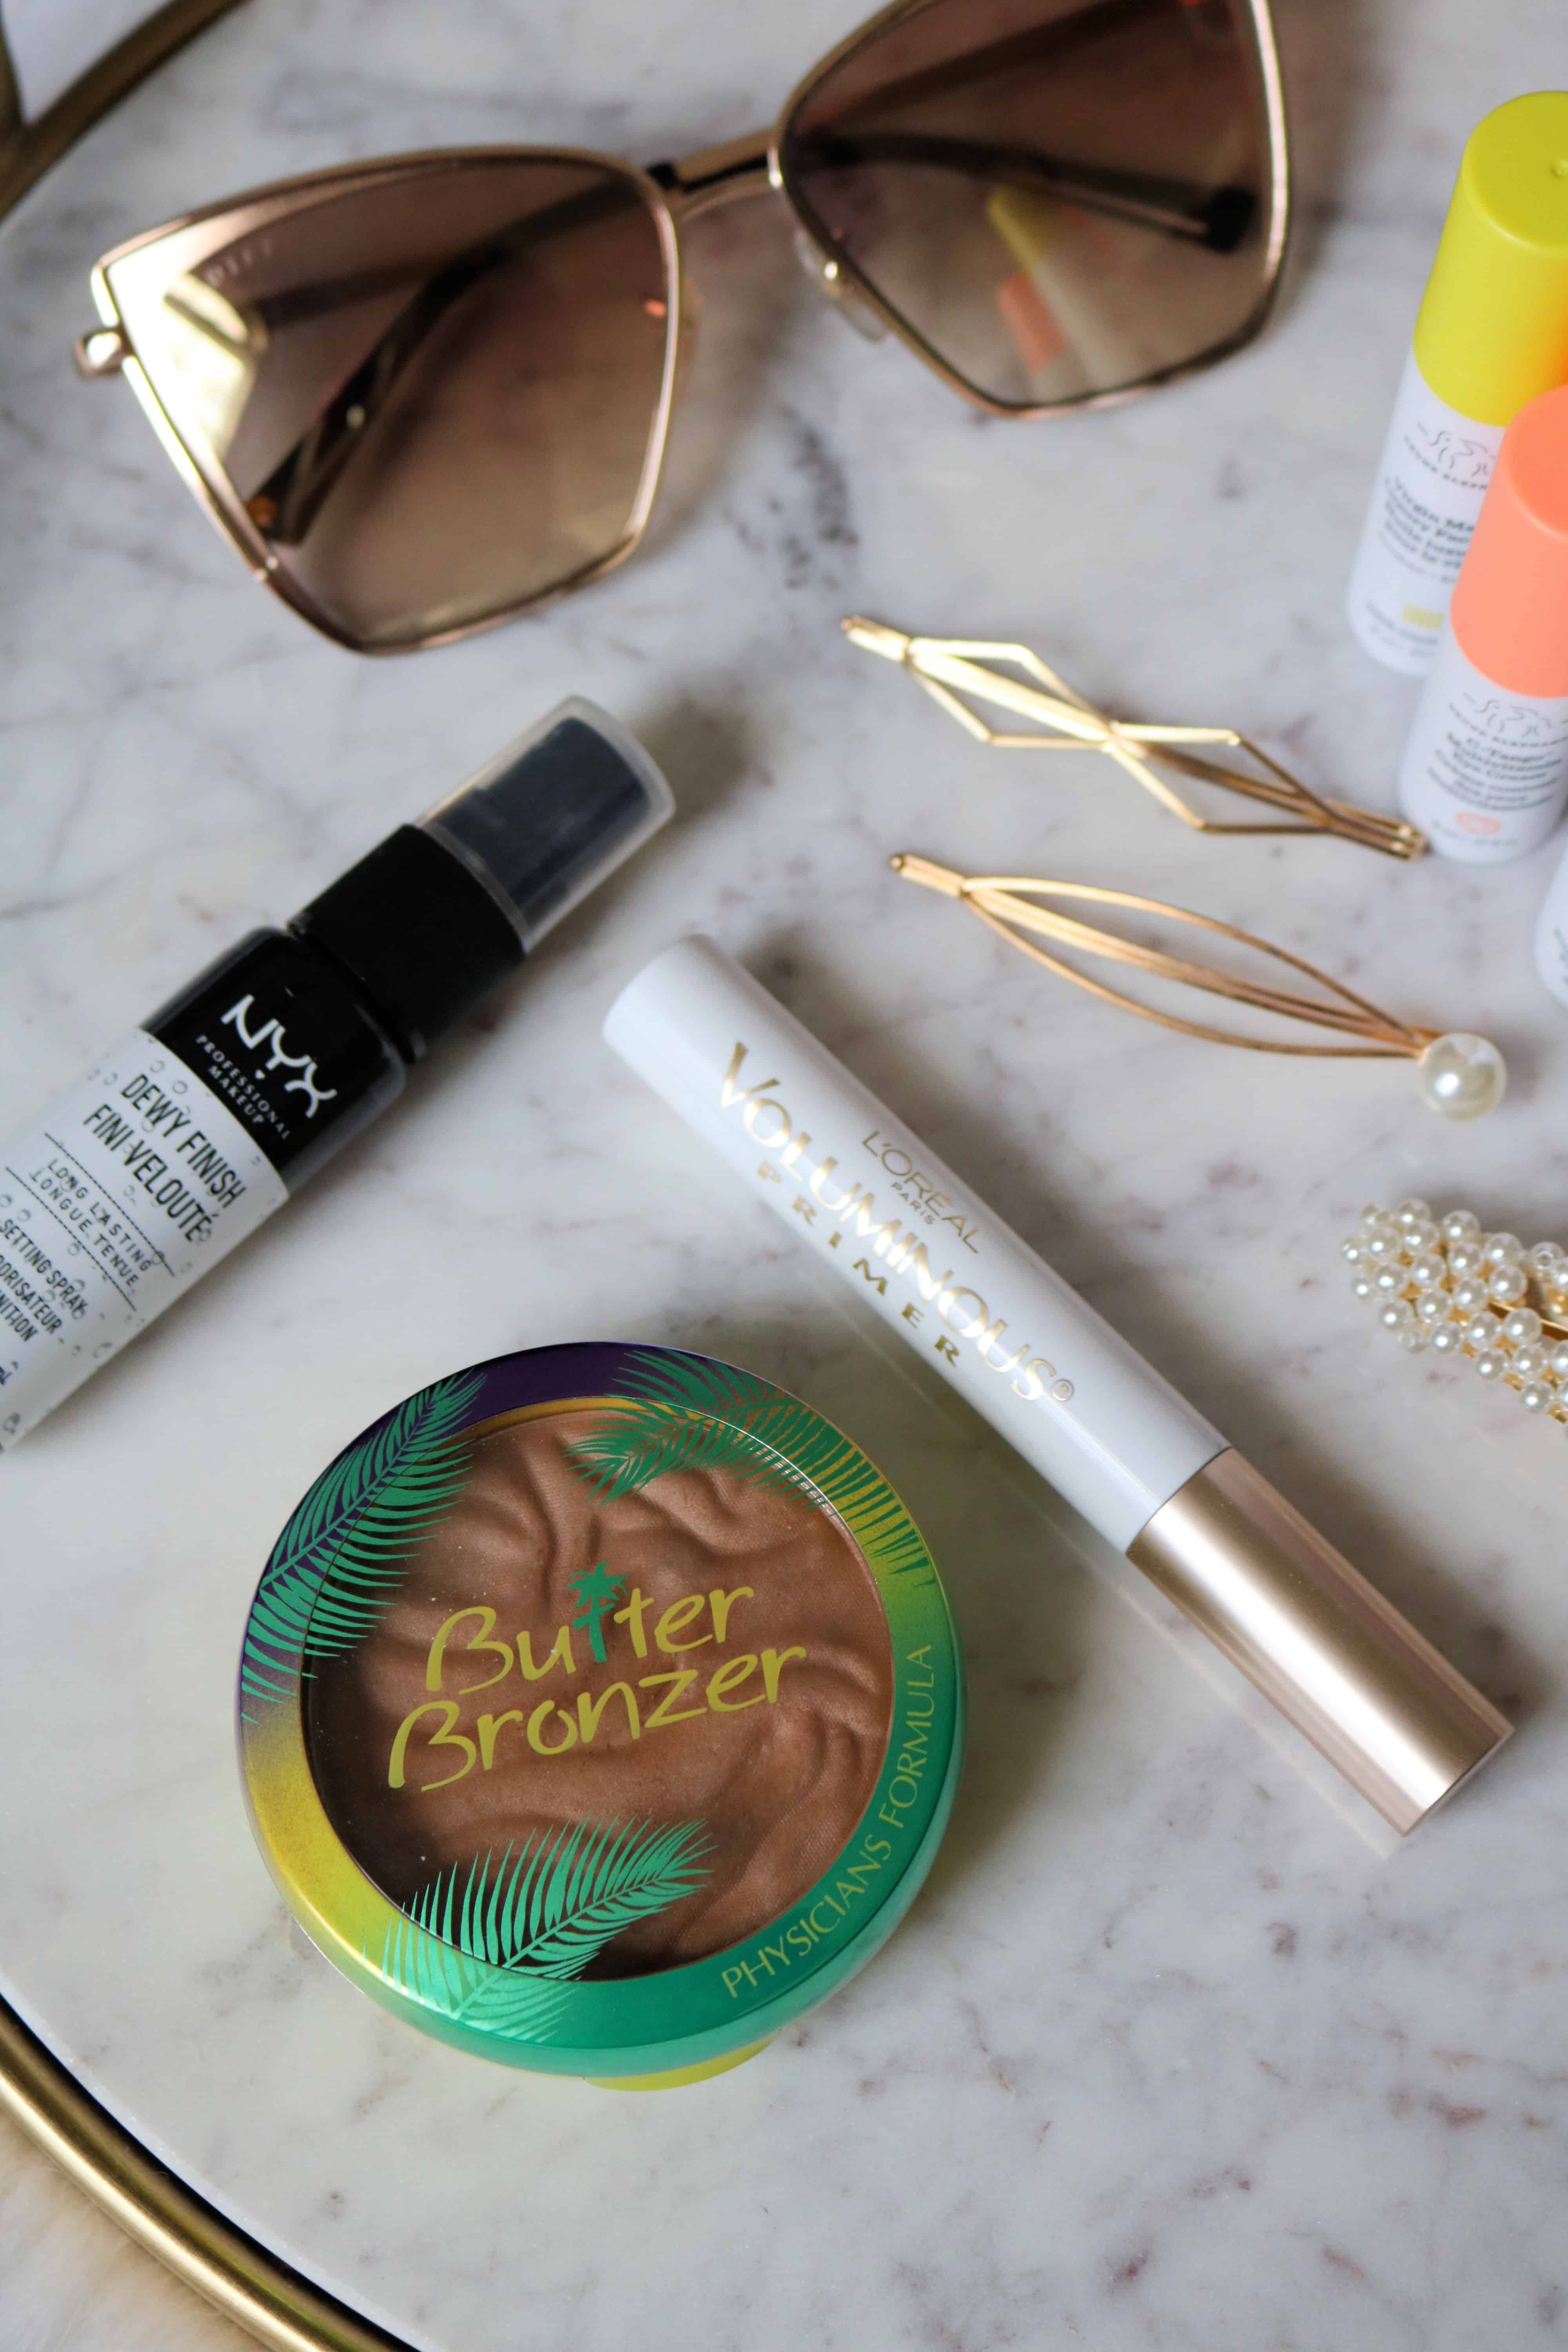 Check out my 10 Summer Beauty & Fashion Favorites full of must-have summer makeup, skincare, and affordable summertime fashion and accessories! #beautyfavorites #makeup #skincare #fashionmusthaves